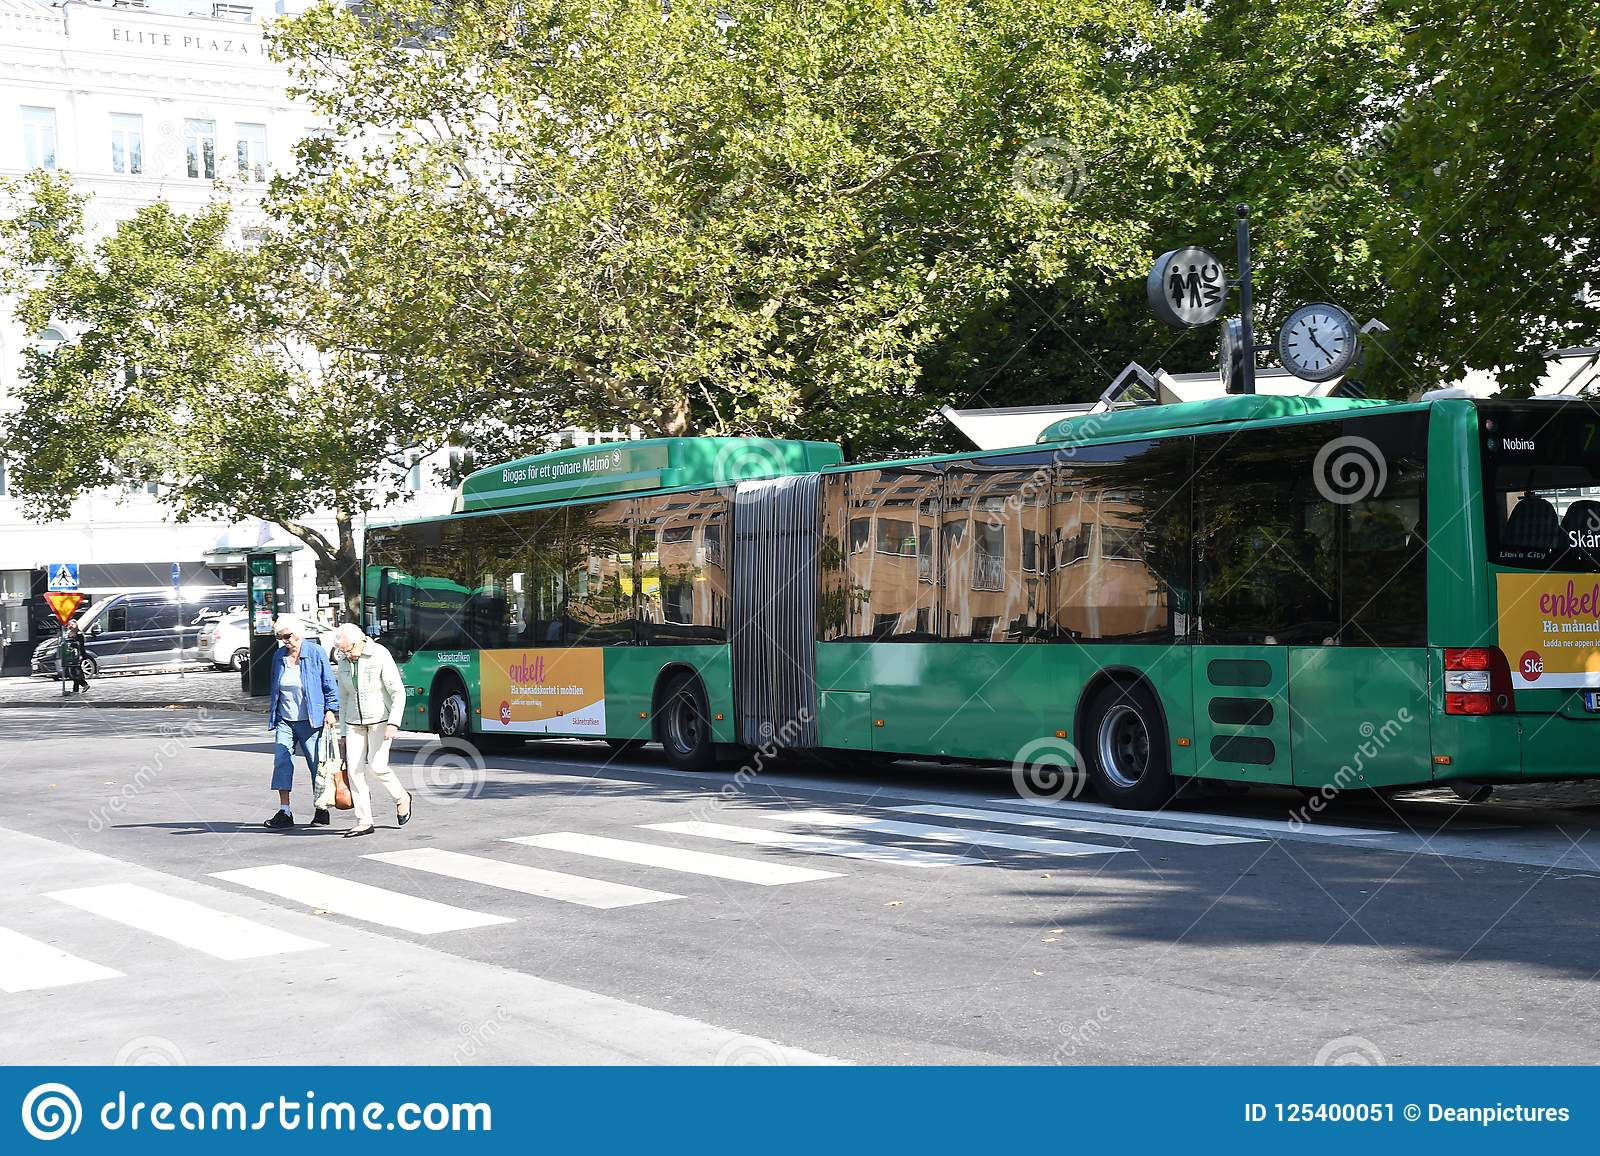 SKAANE BUS TRANSPORTATION IN MALM  Editorial Photo - Image of